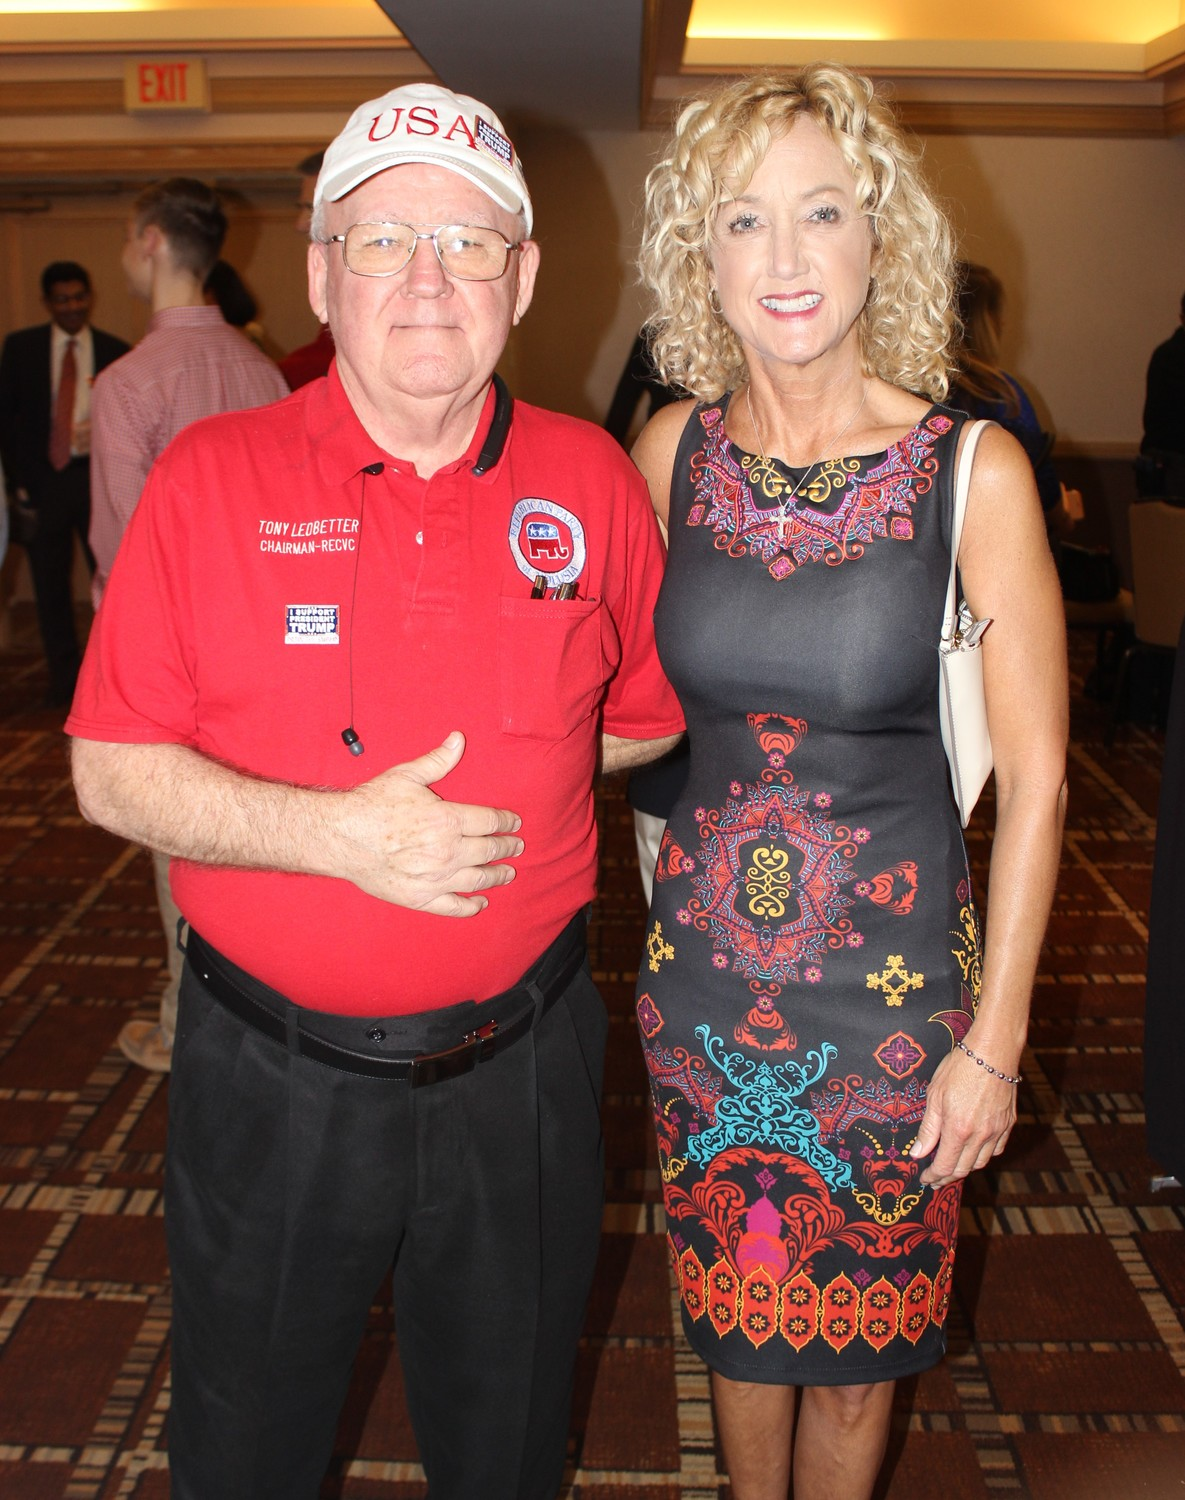 Tony Ledbetter, chairman of the Volusia County Republican Executive Committee with Diane Scherff, second vice chair for the St. Johns County Republican Executive Committee